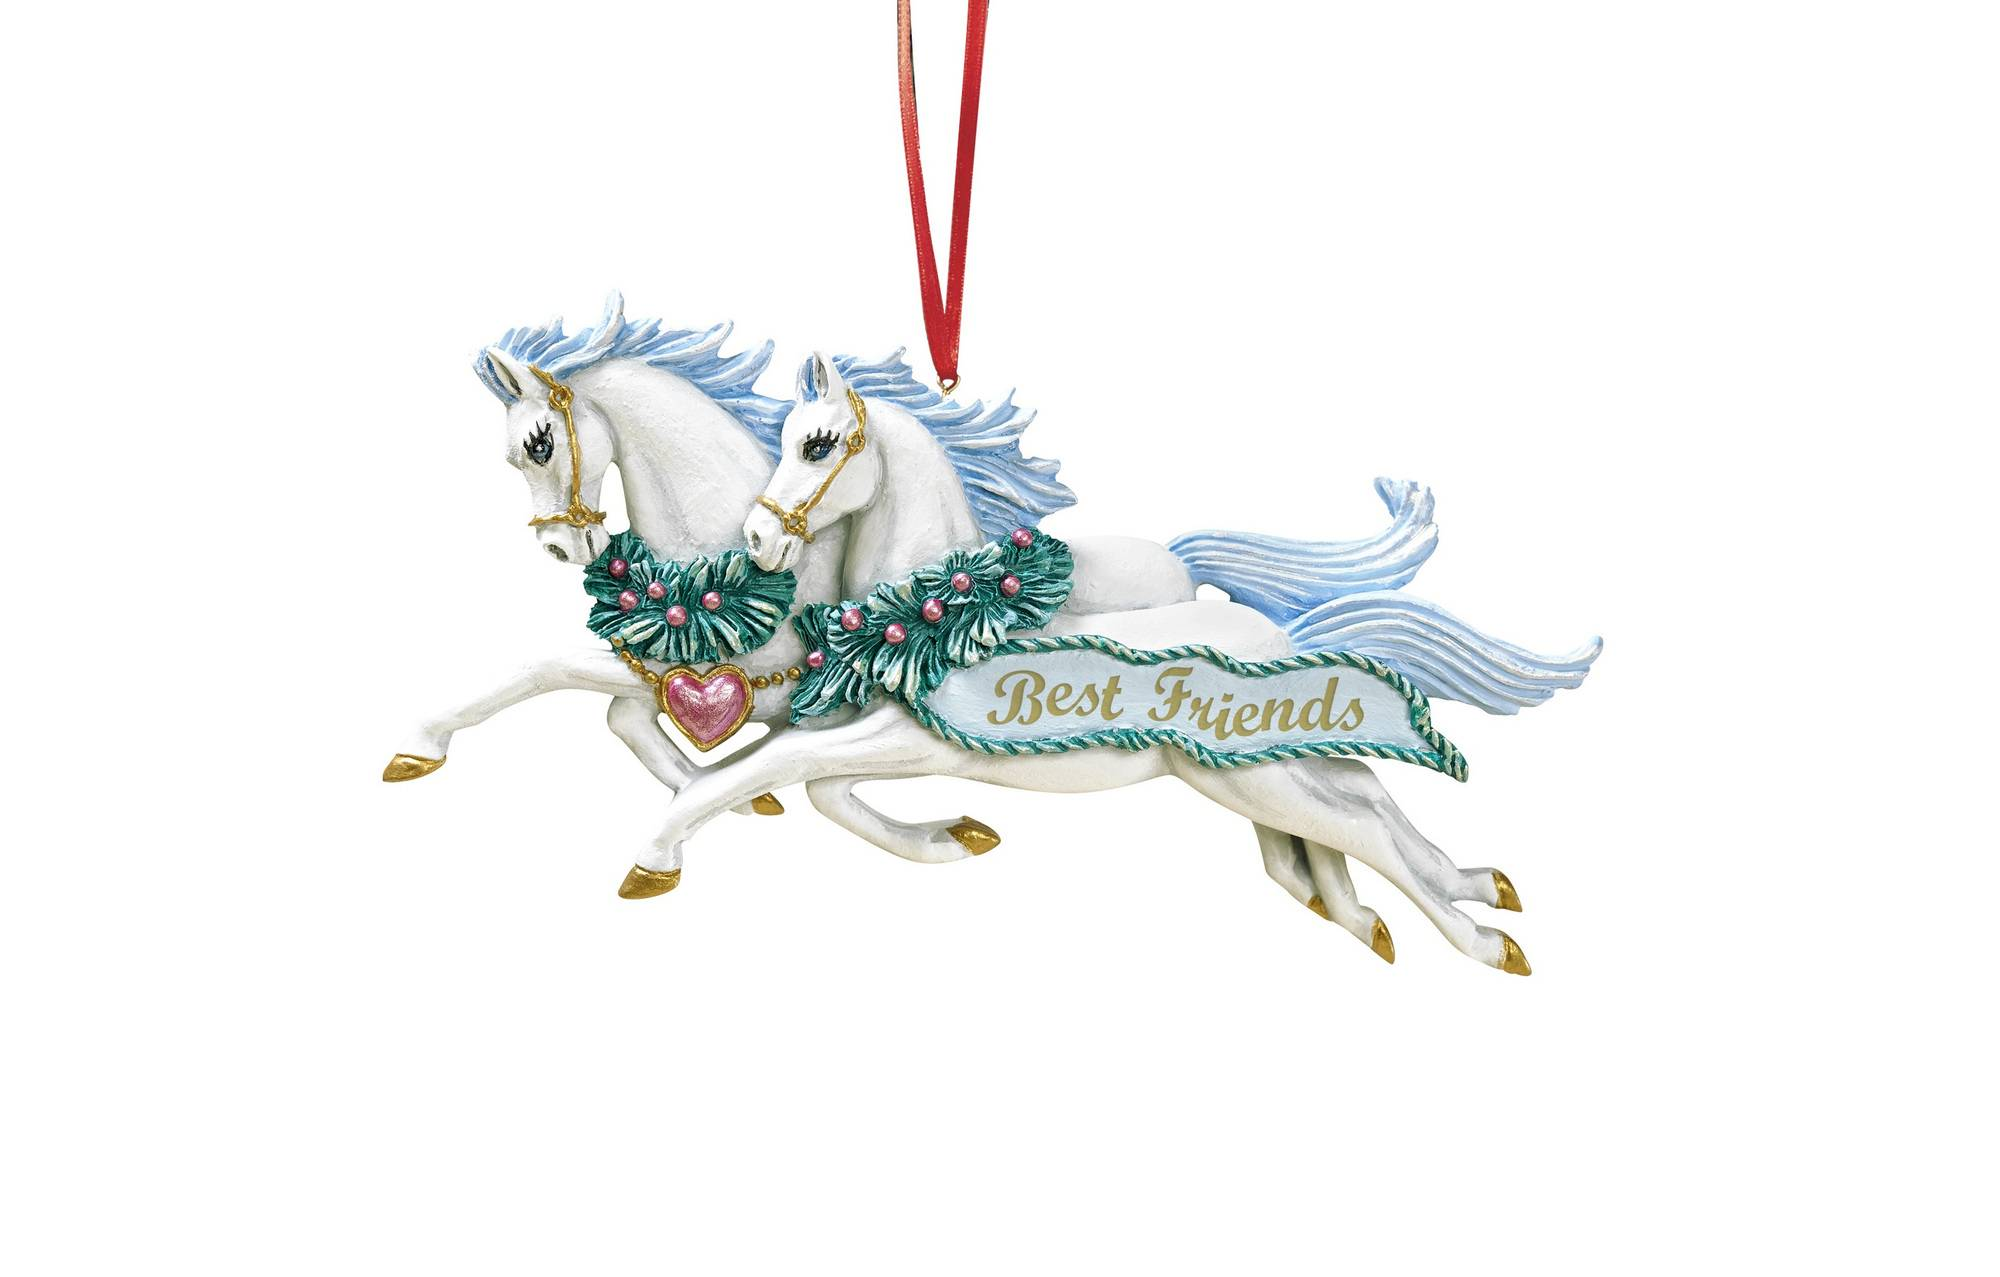 Breyer 2016 Best Friends Ornament